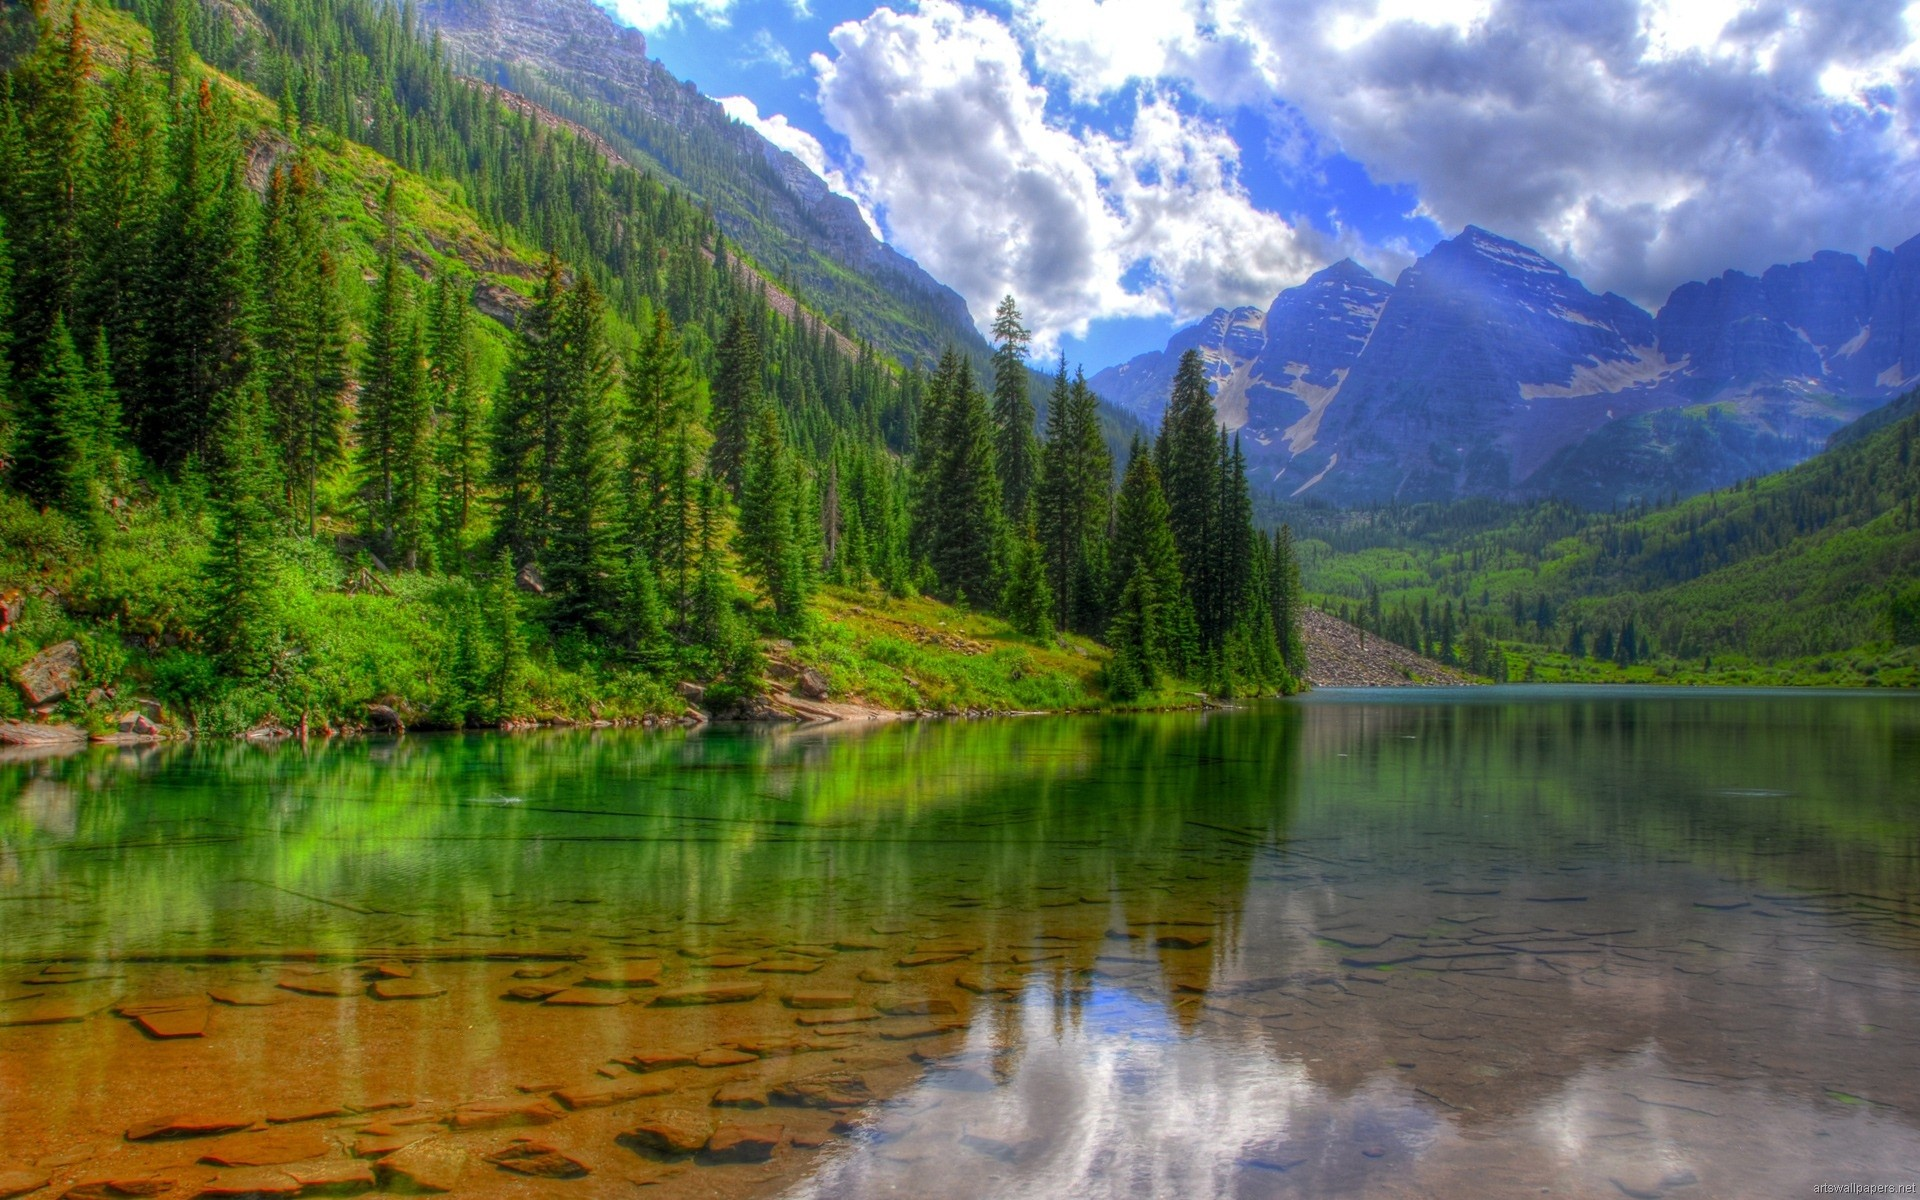 Nature HD Wallpapers, Widescreen, Full HD 1080p, Nature HD Wallpapers .